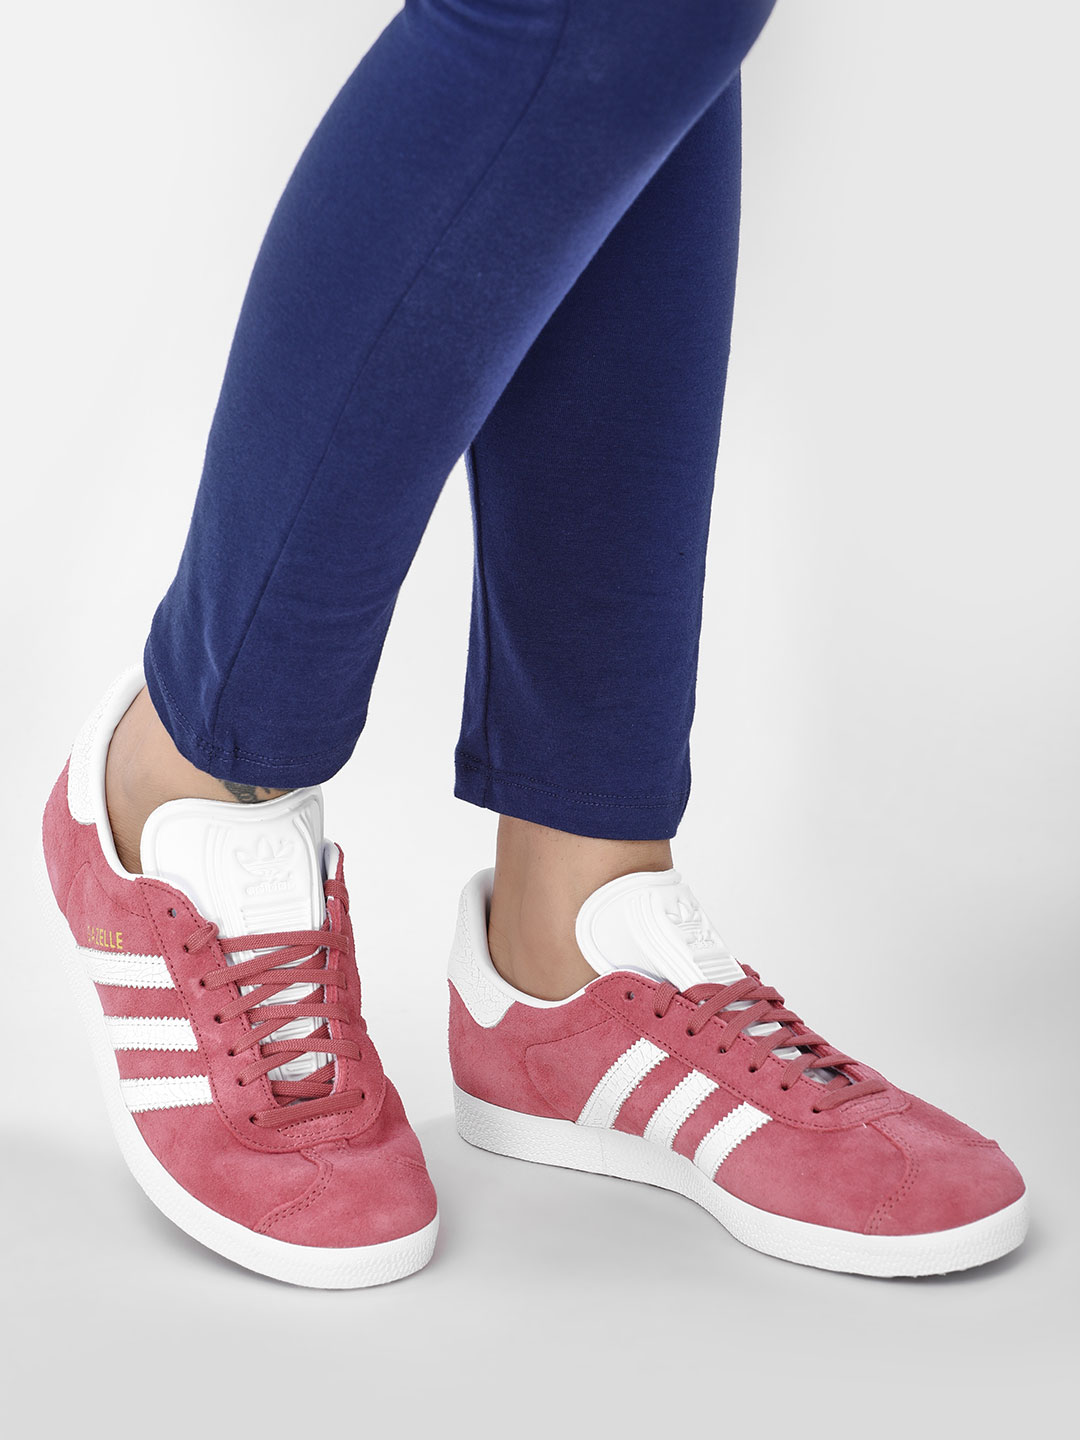 Adidas Originals Pink Gazelle W Shoes 1